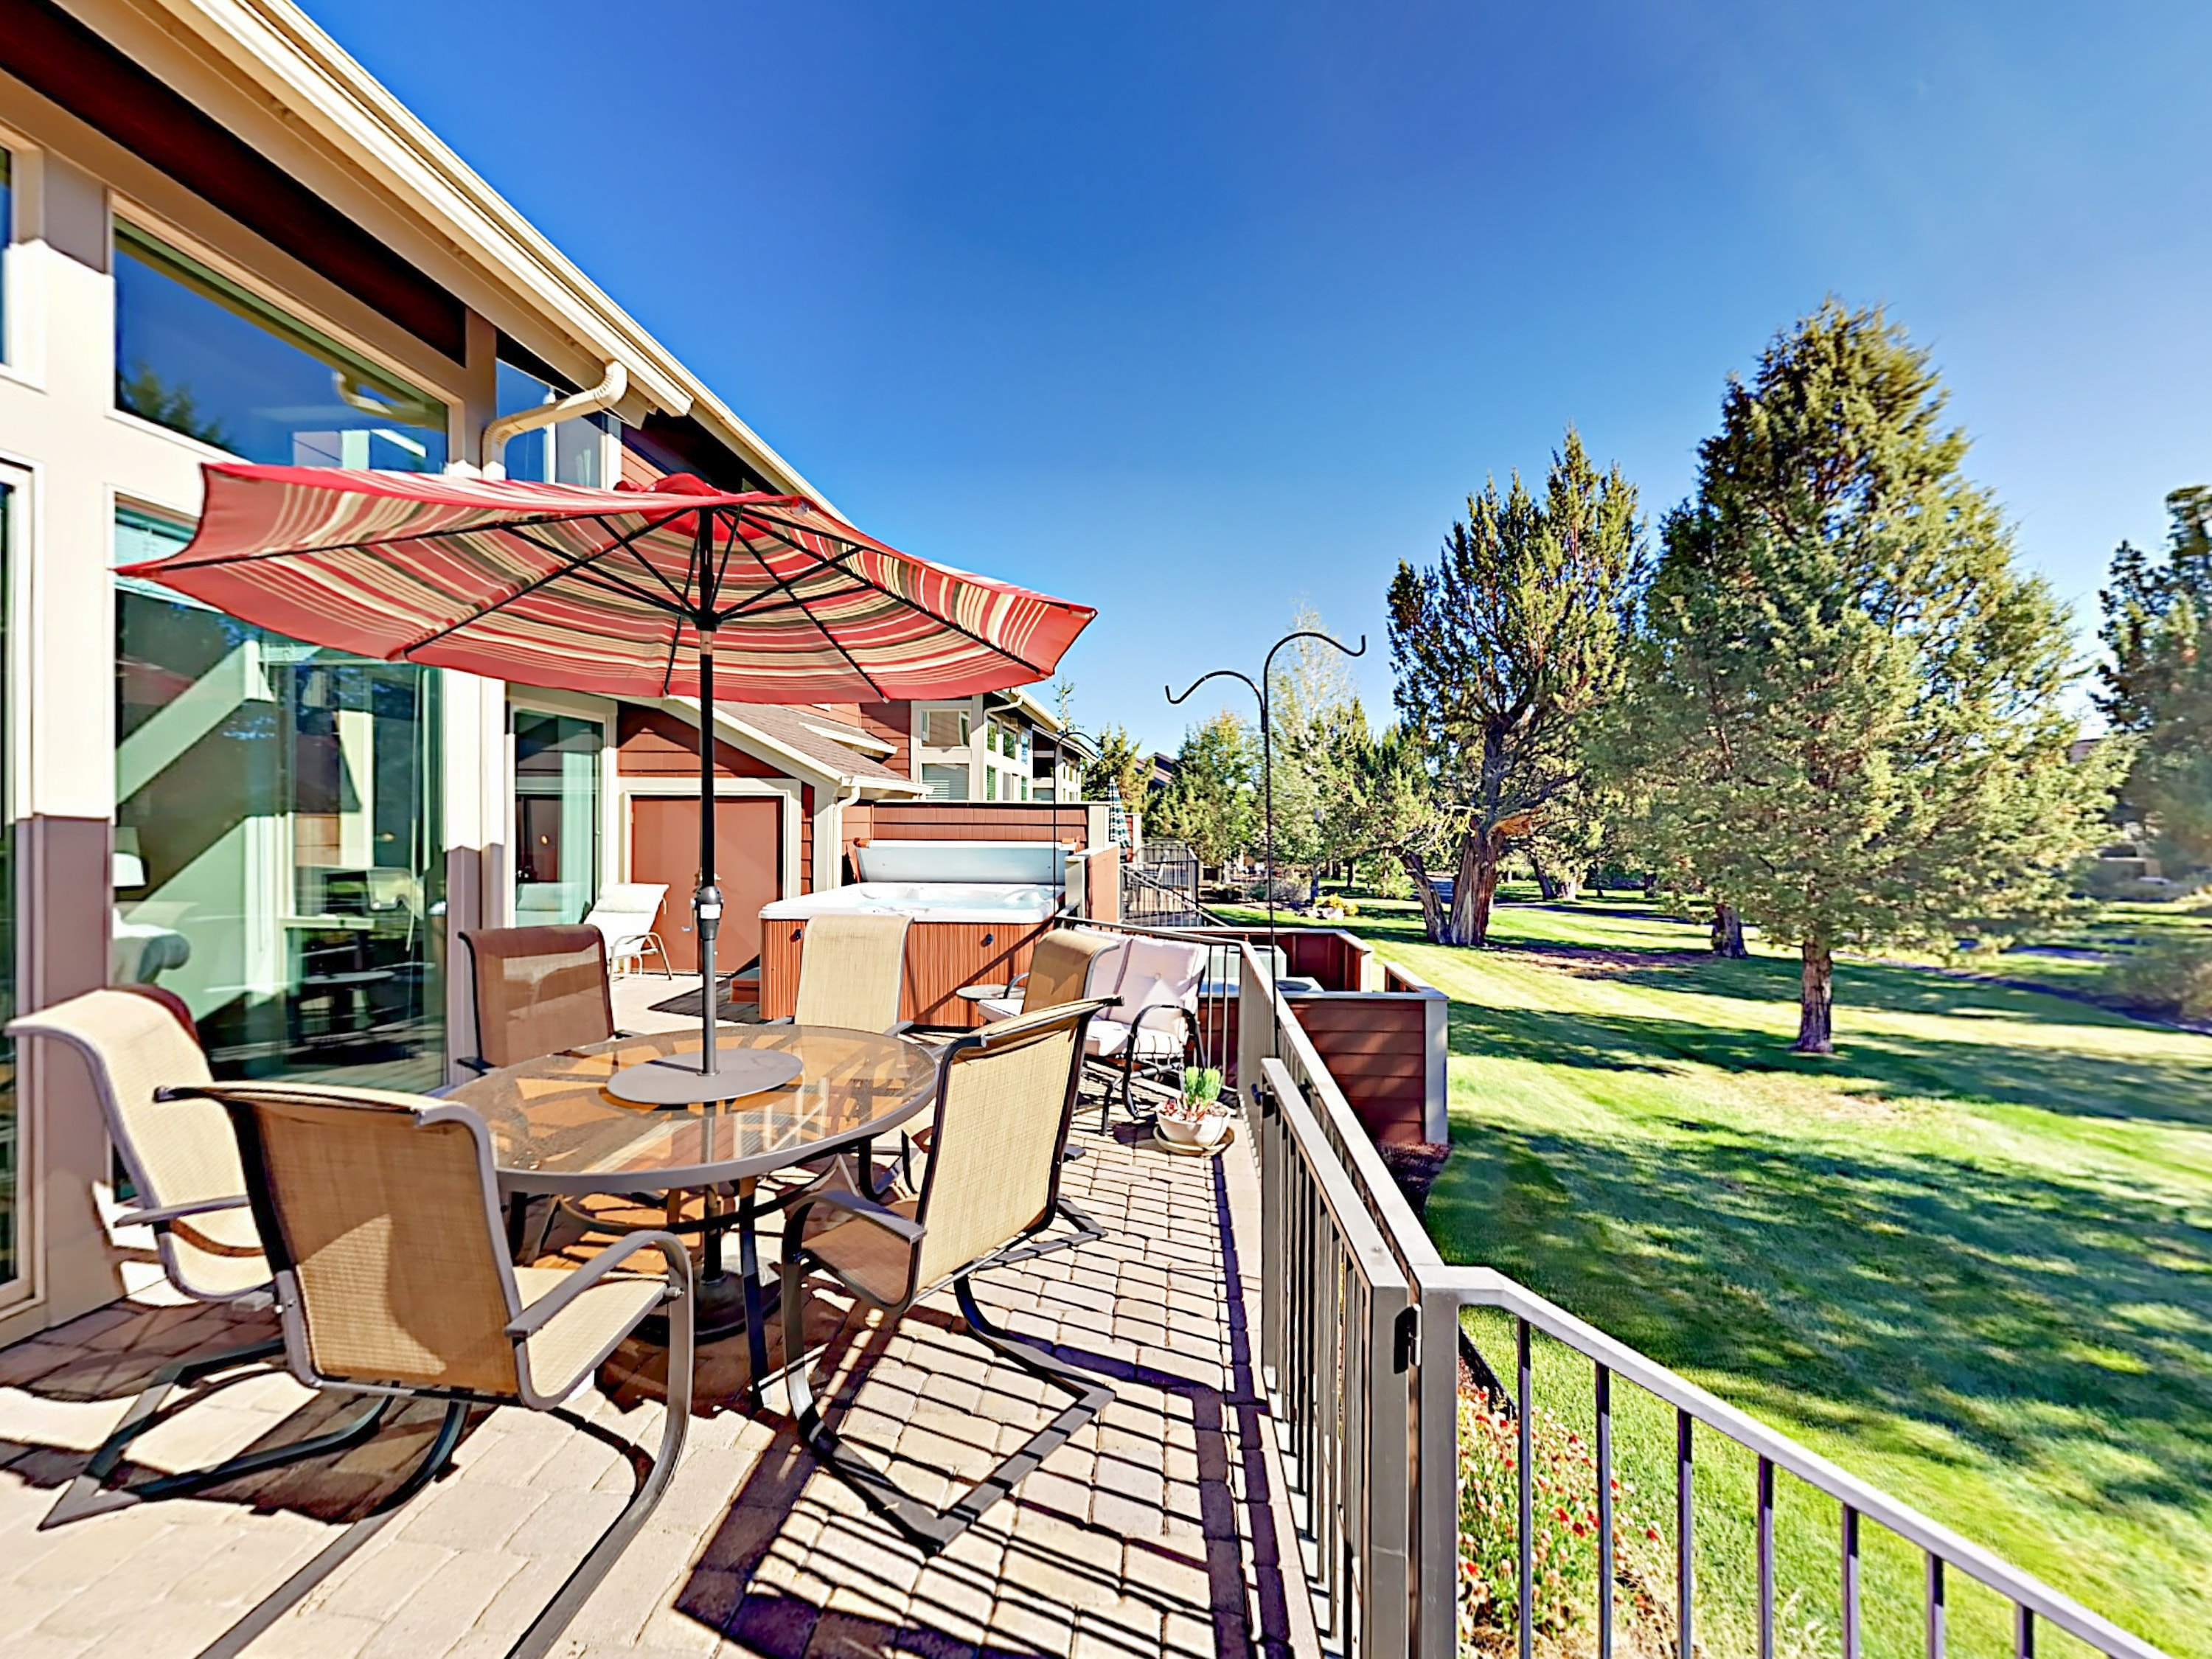 The expansive private deck overlooks lush lawns at the creek at Eagle Crest Resort.